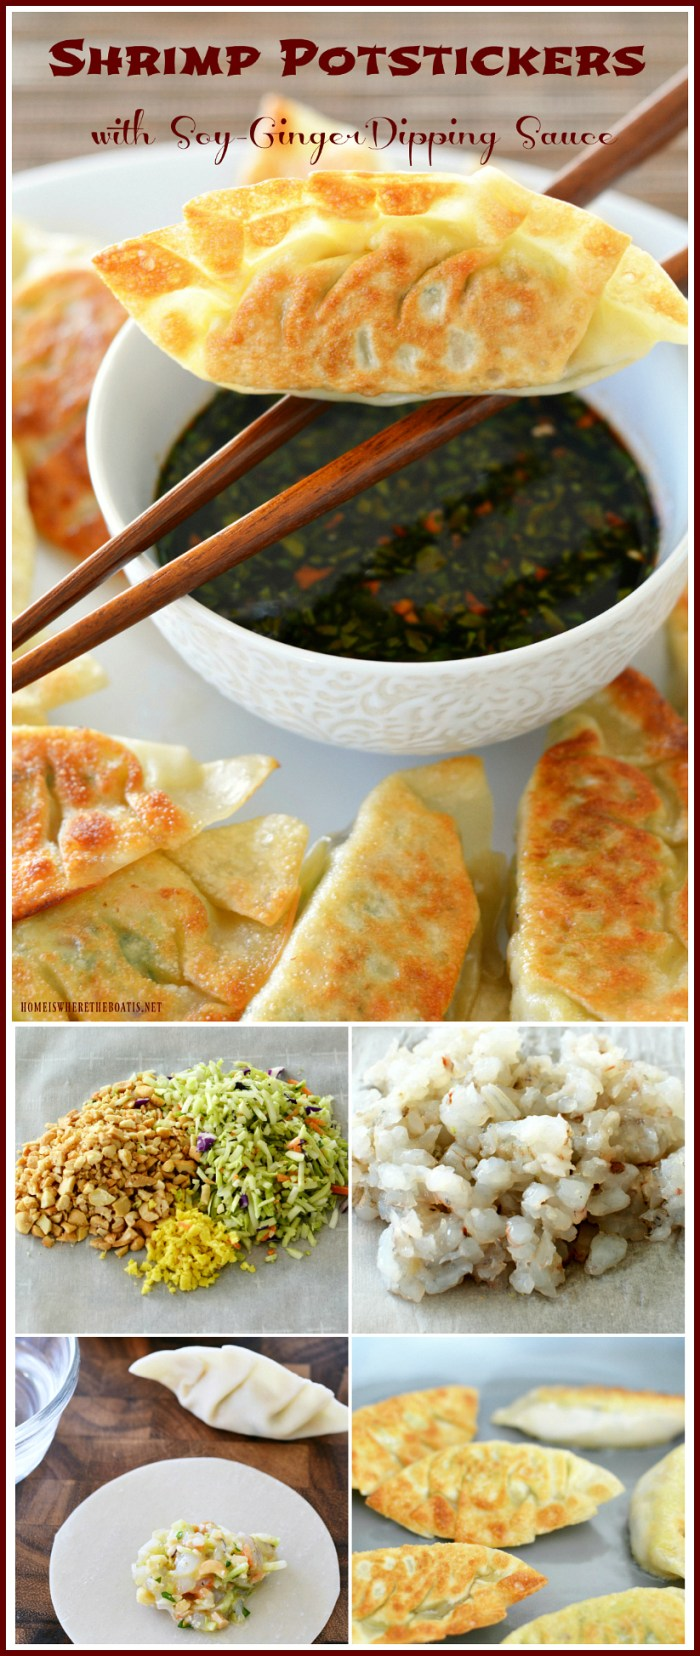 Shrimp Potstickers with Soy-Ginger Dipping Sauce | ©homeiswheretheboatis.net